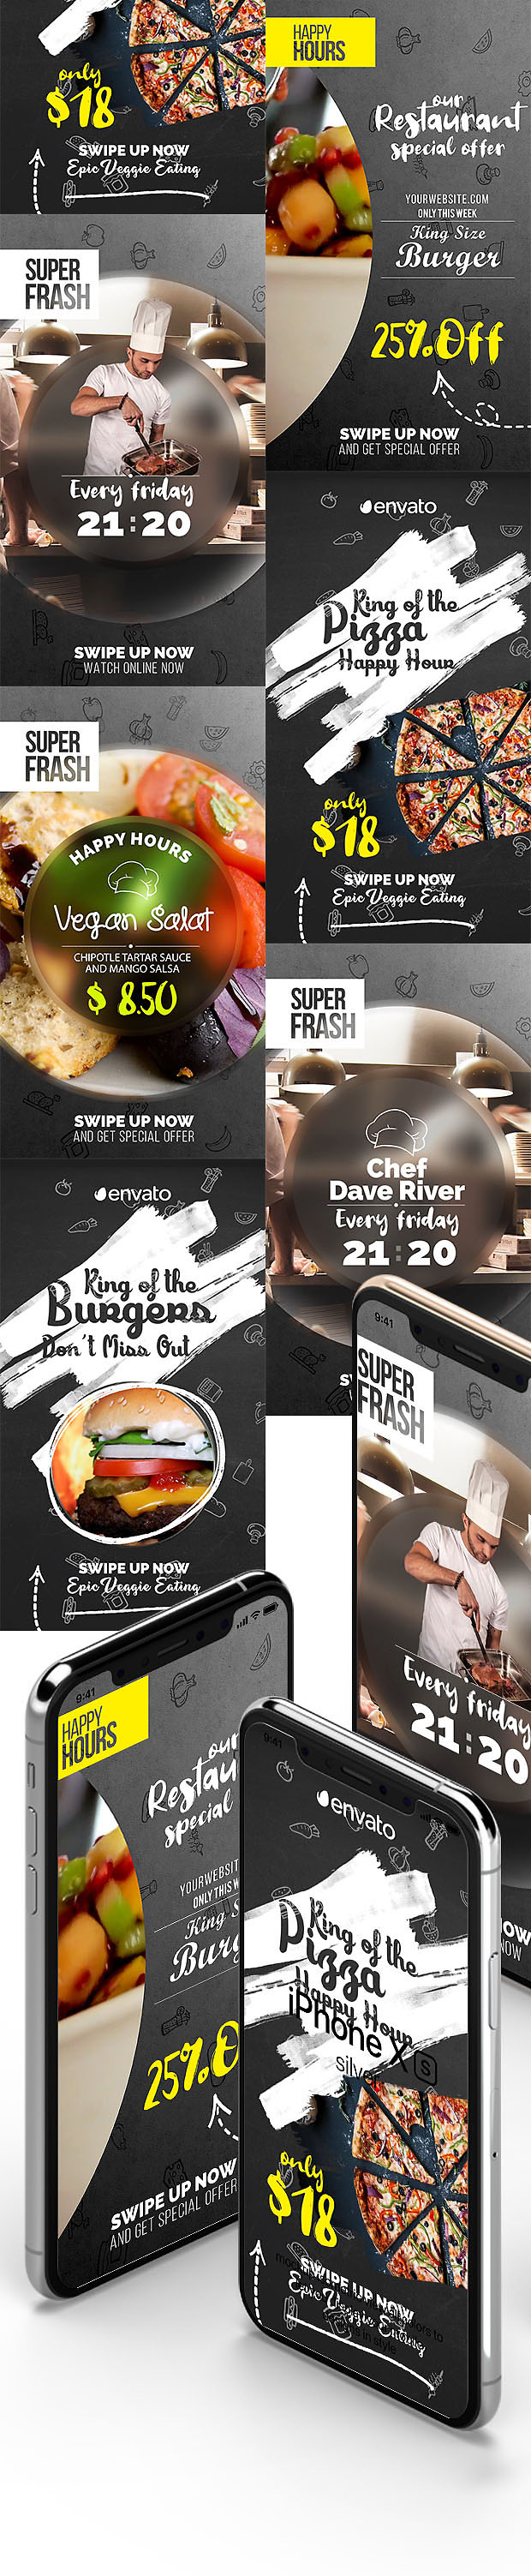 Restaurant Instagram Stories Pack Free Addon v2.2